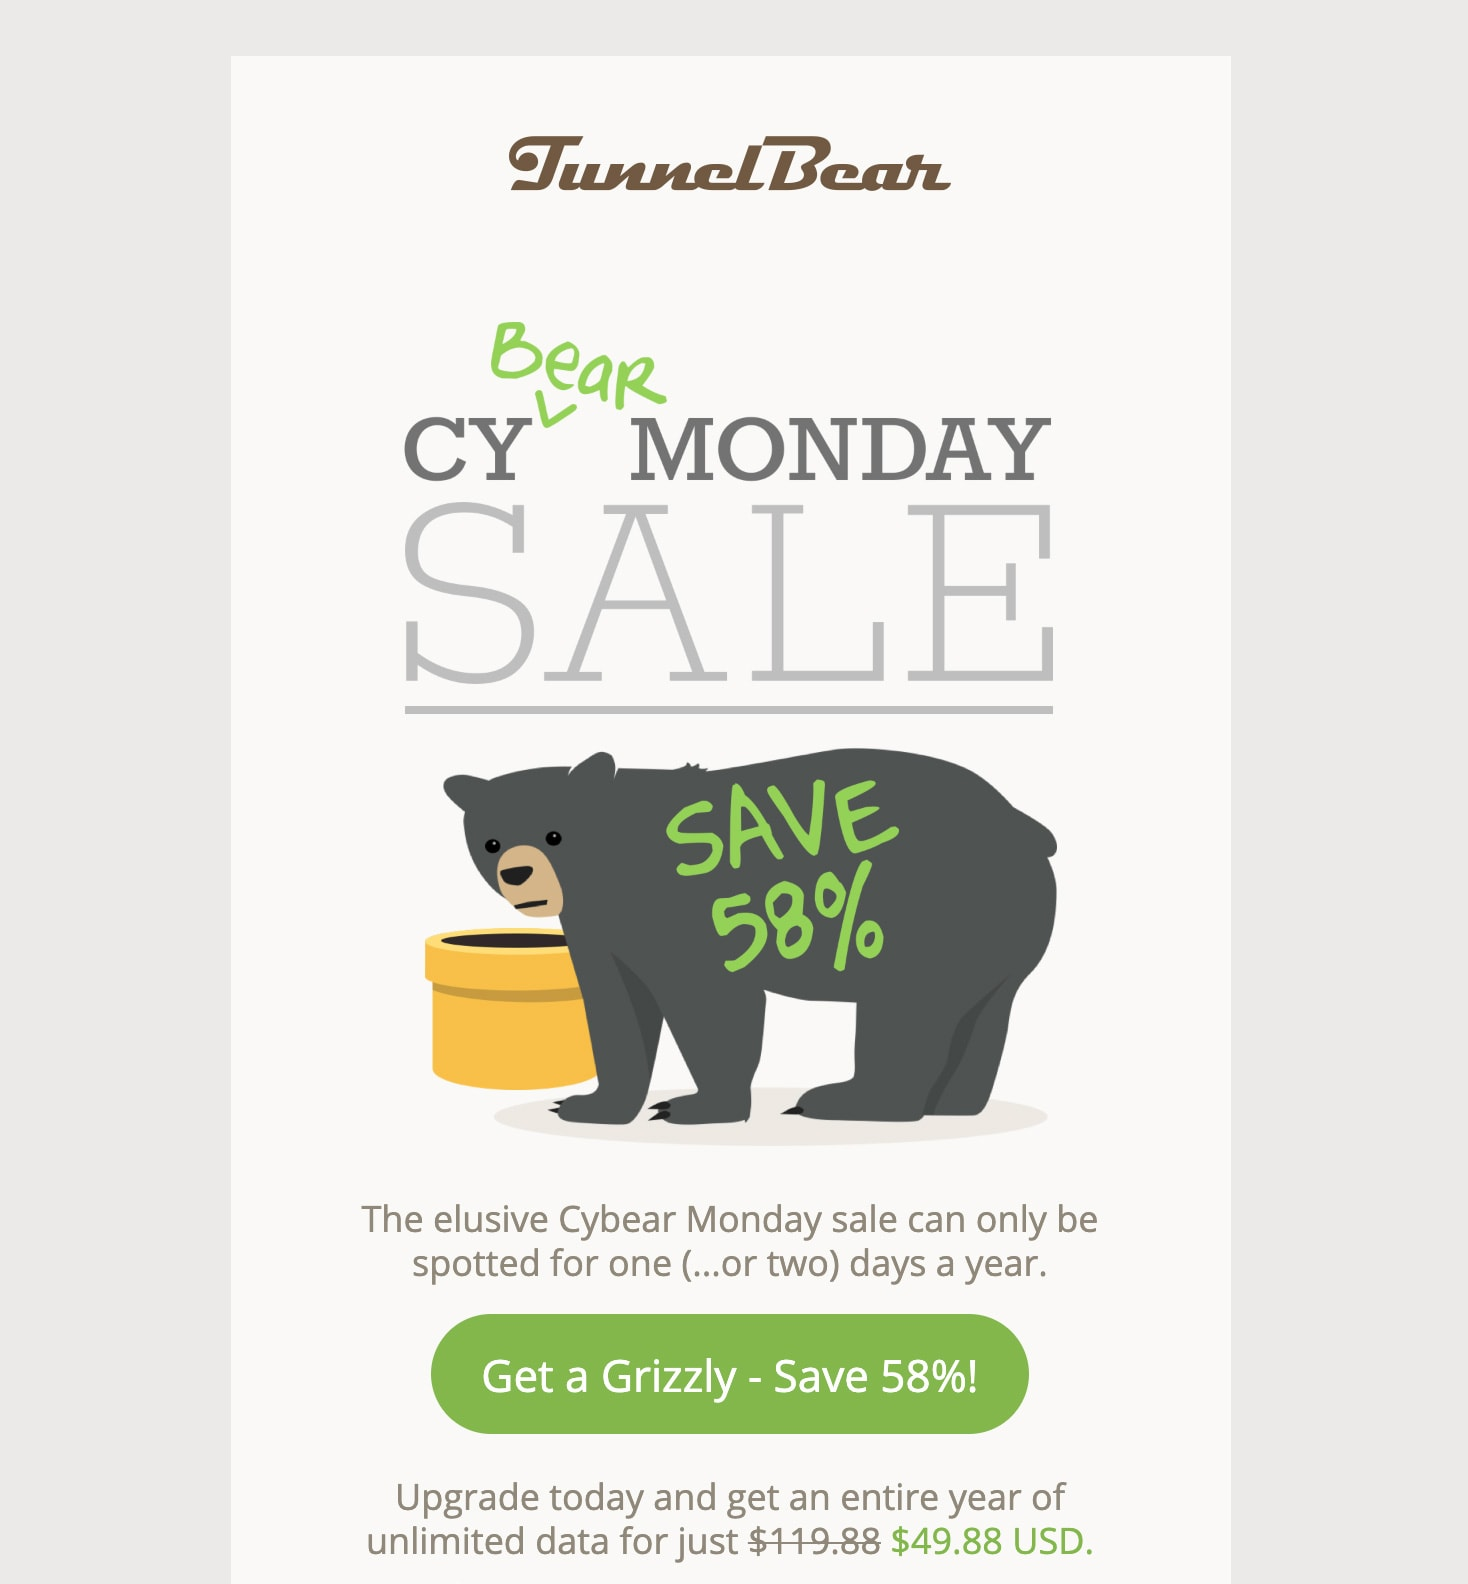 TunnelBear Email